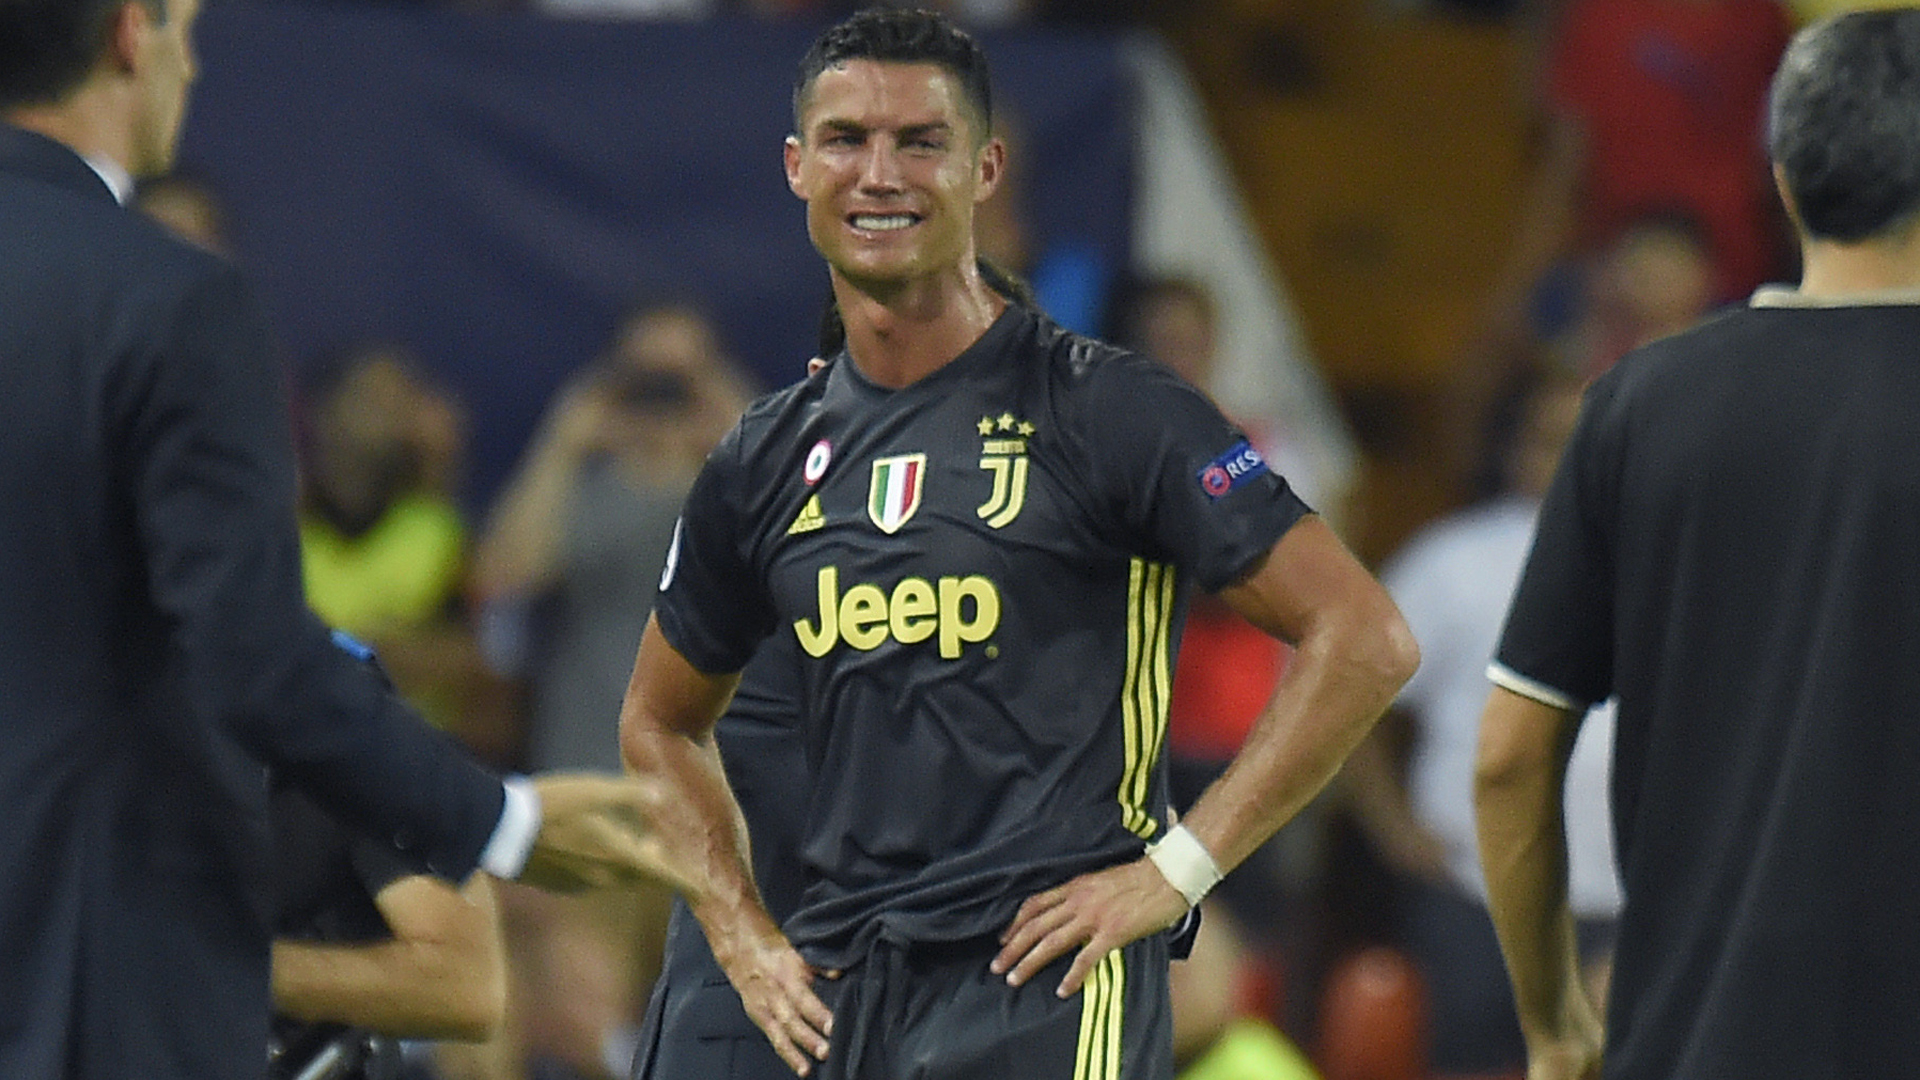 Cristiano Ronaldo sent off for Juventus against Valencia